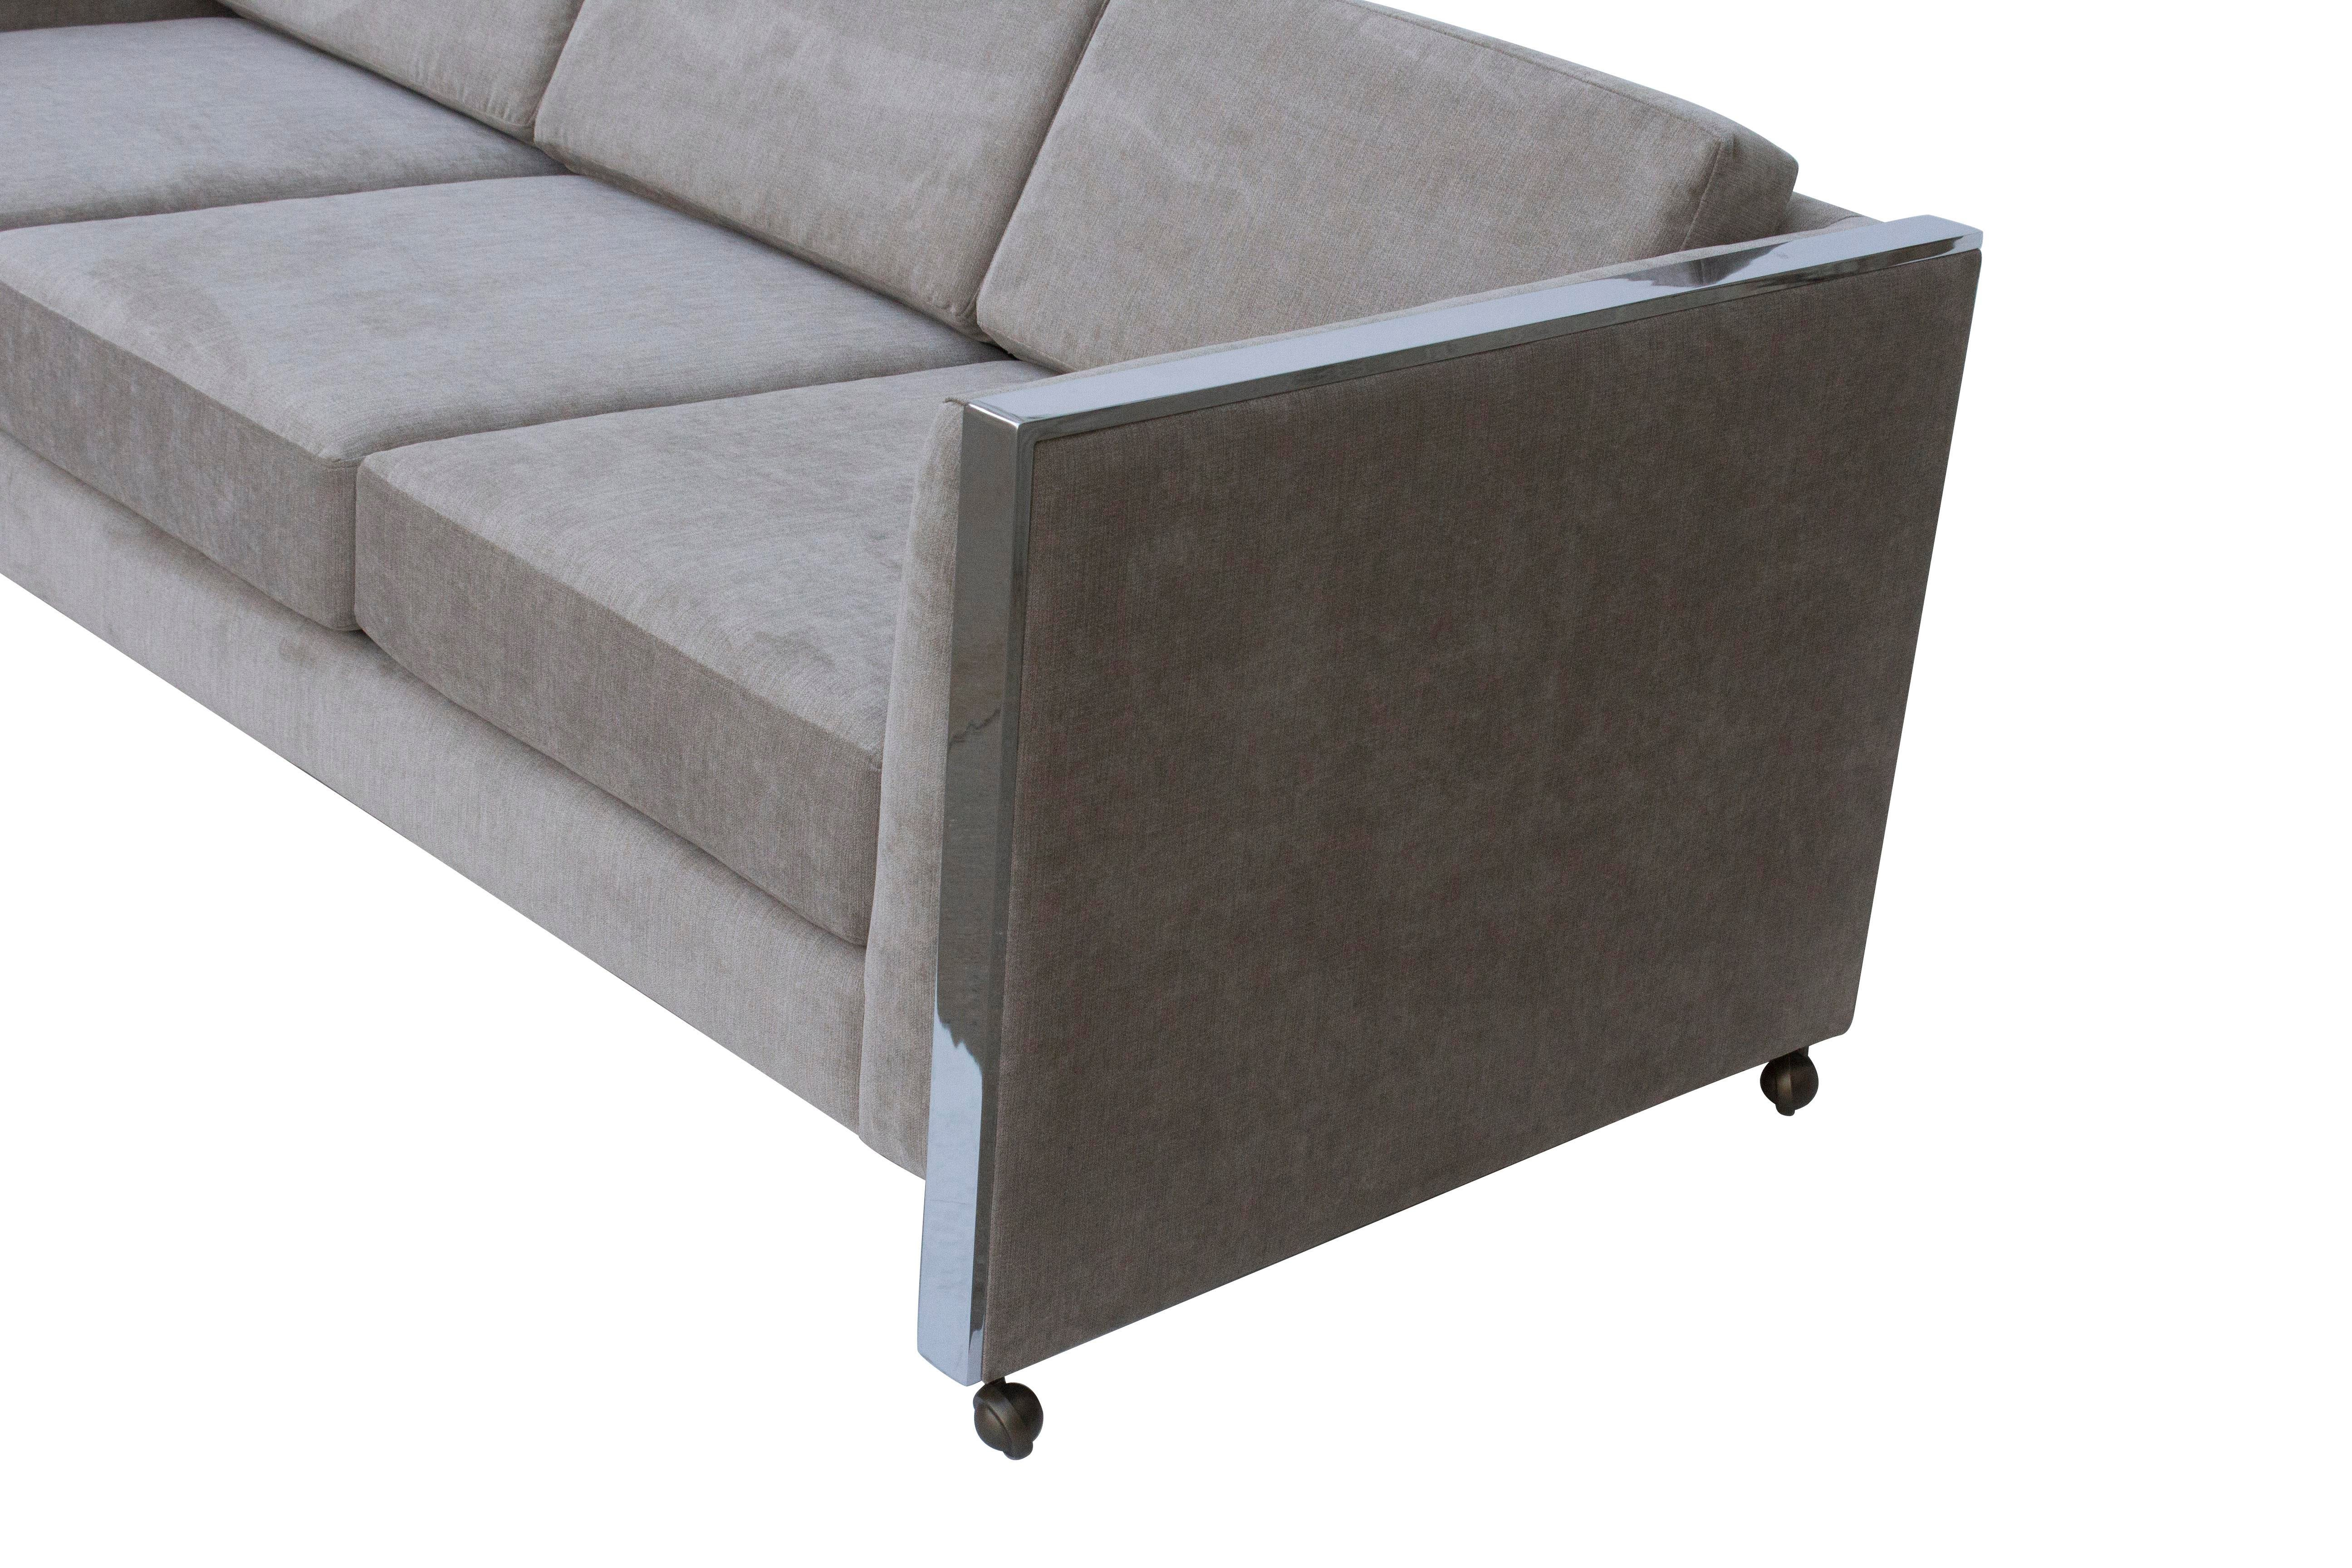 Selig Milo Baughman Style Even Arm Sofa By Selig Of Monroe For Sale   Image  4